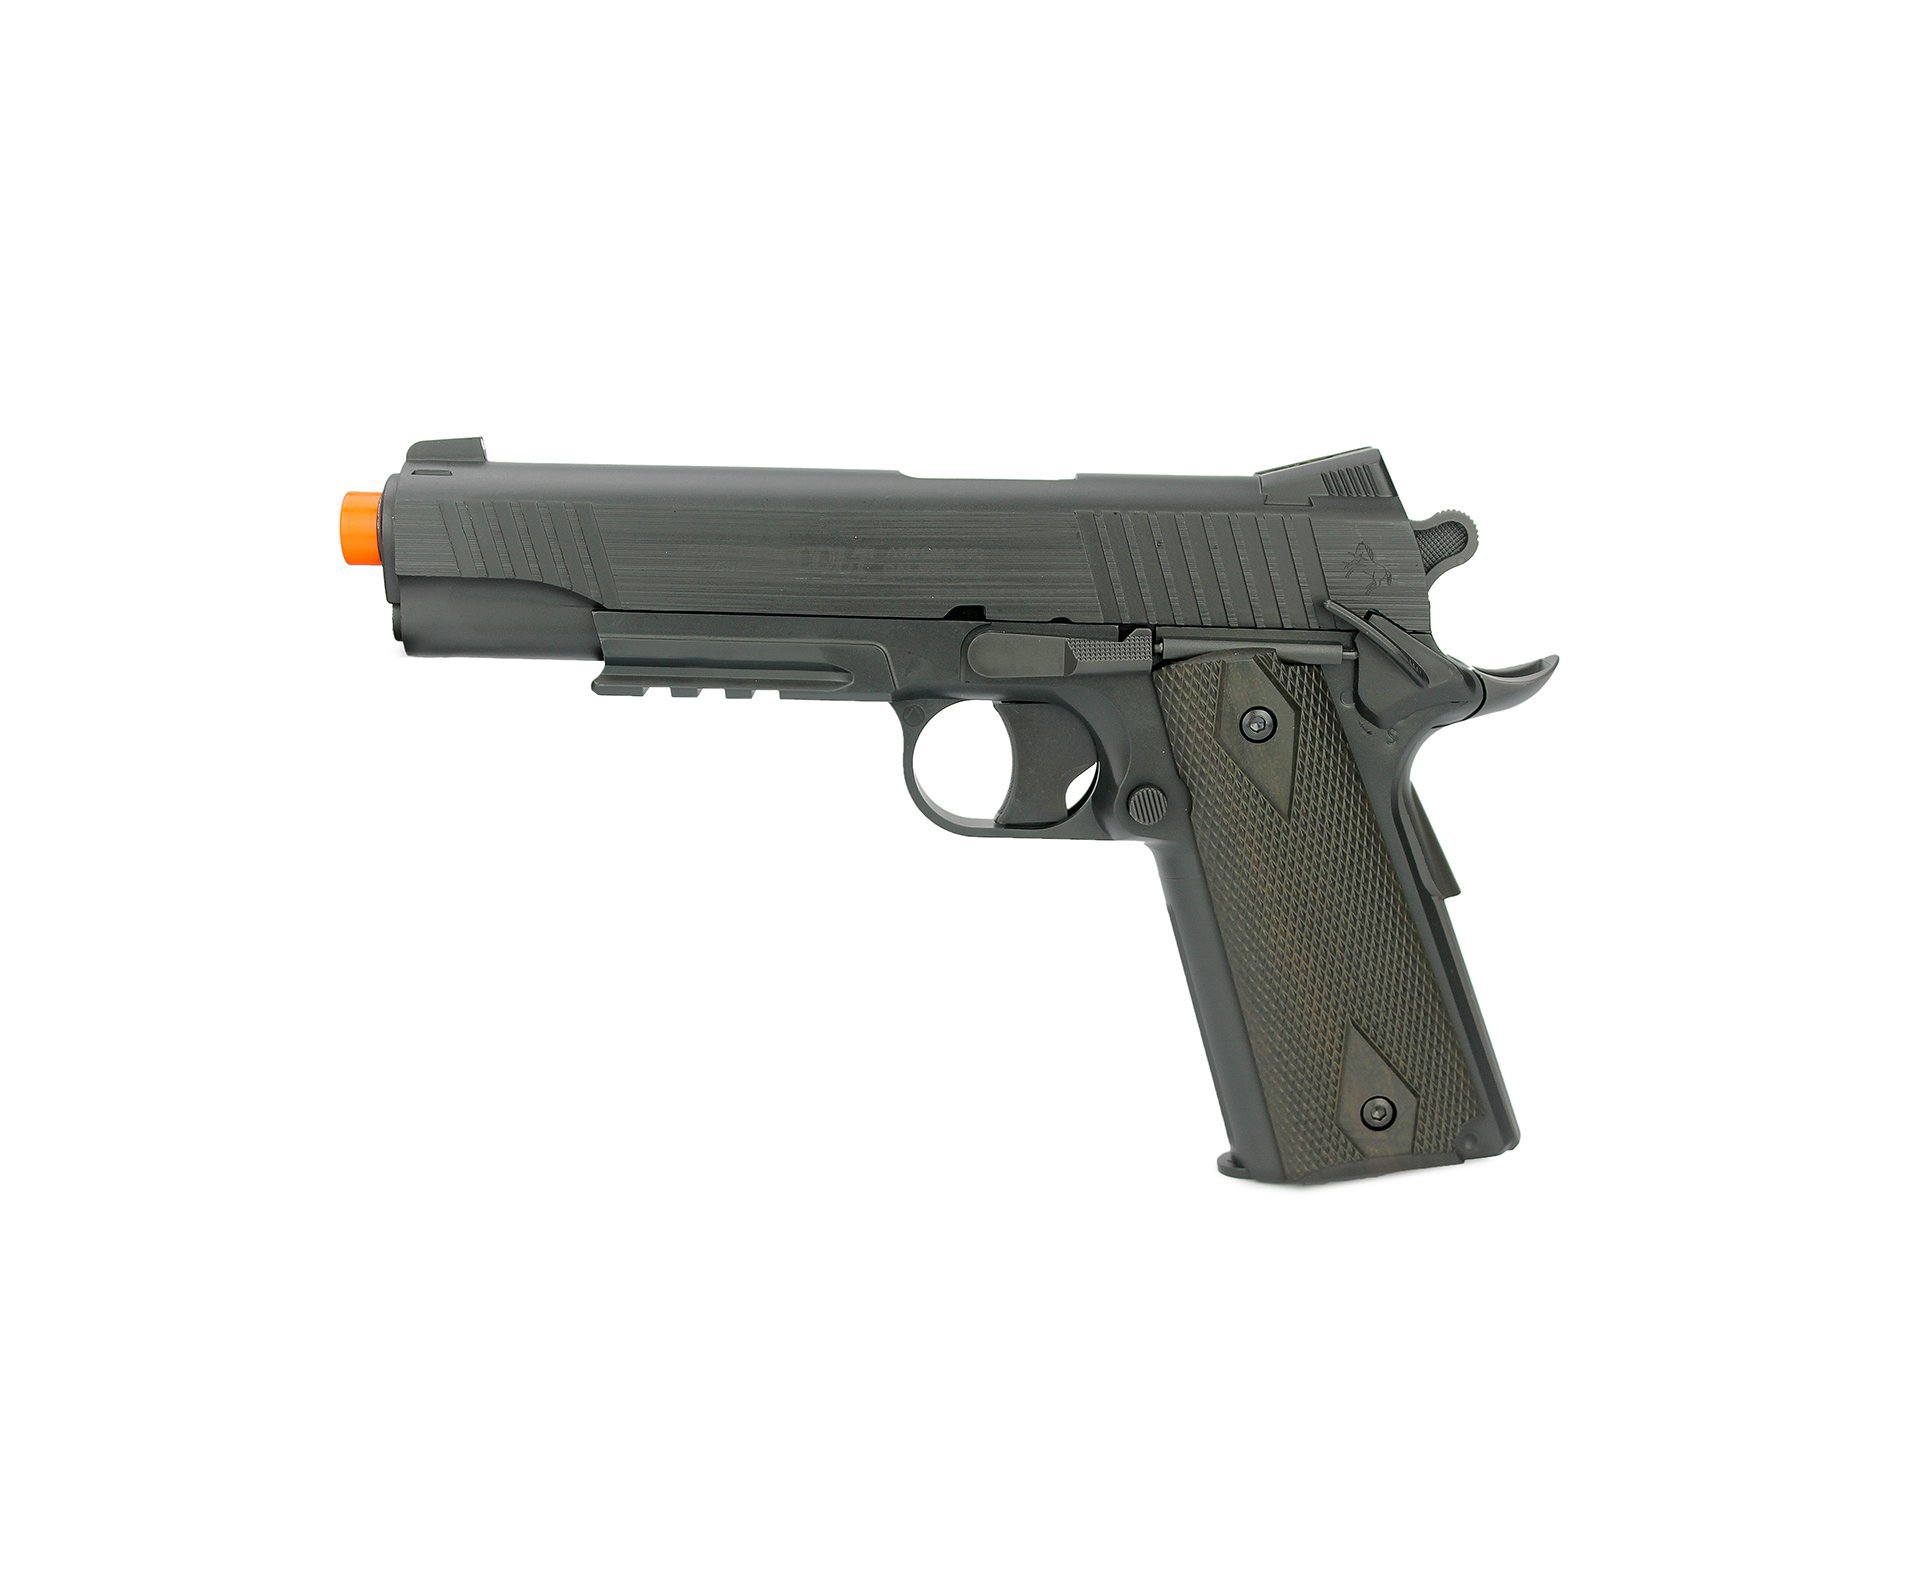 Pistola De Airsoft Gas Co2 Colt 1911 Rail Gun Slide Metal Preta Cal 6mm